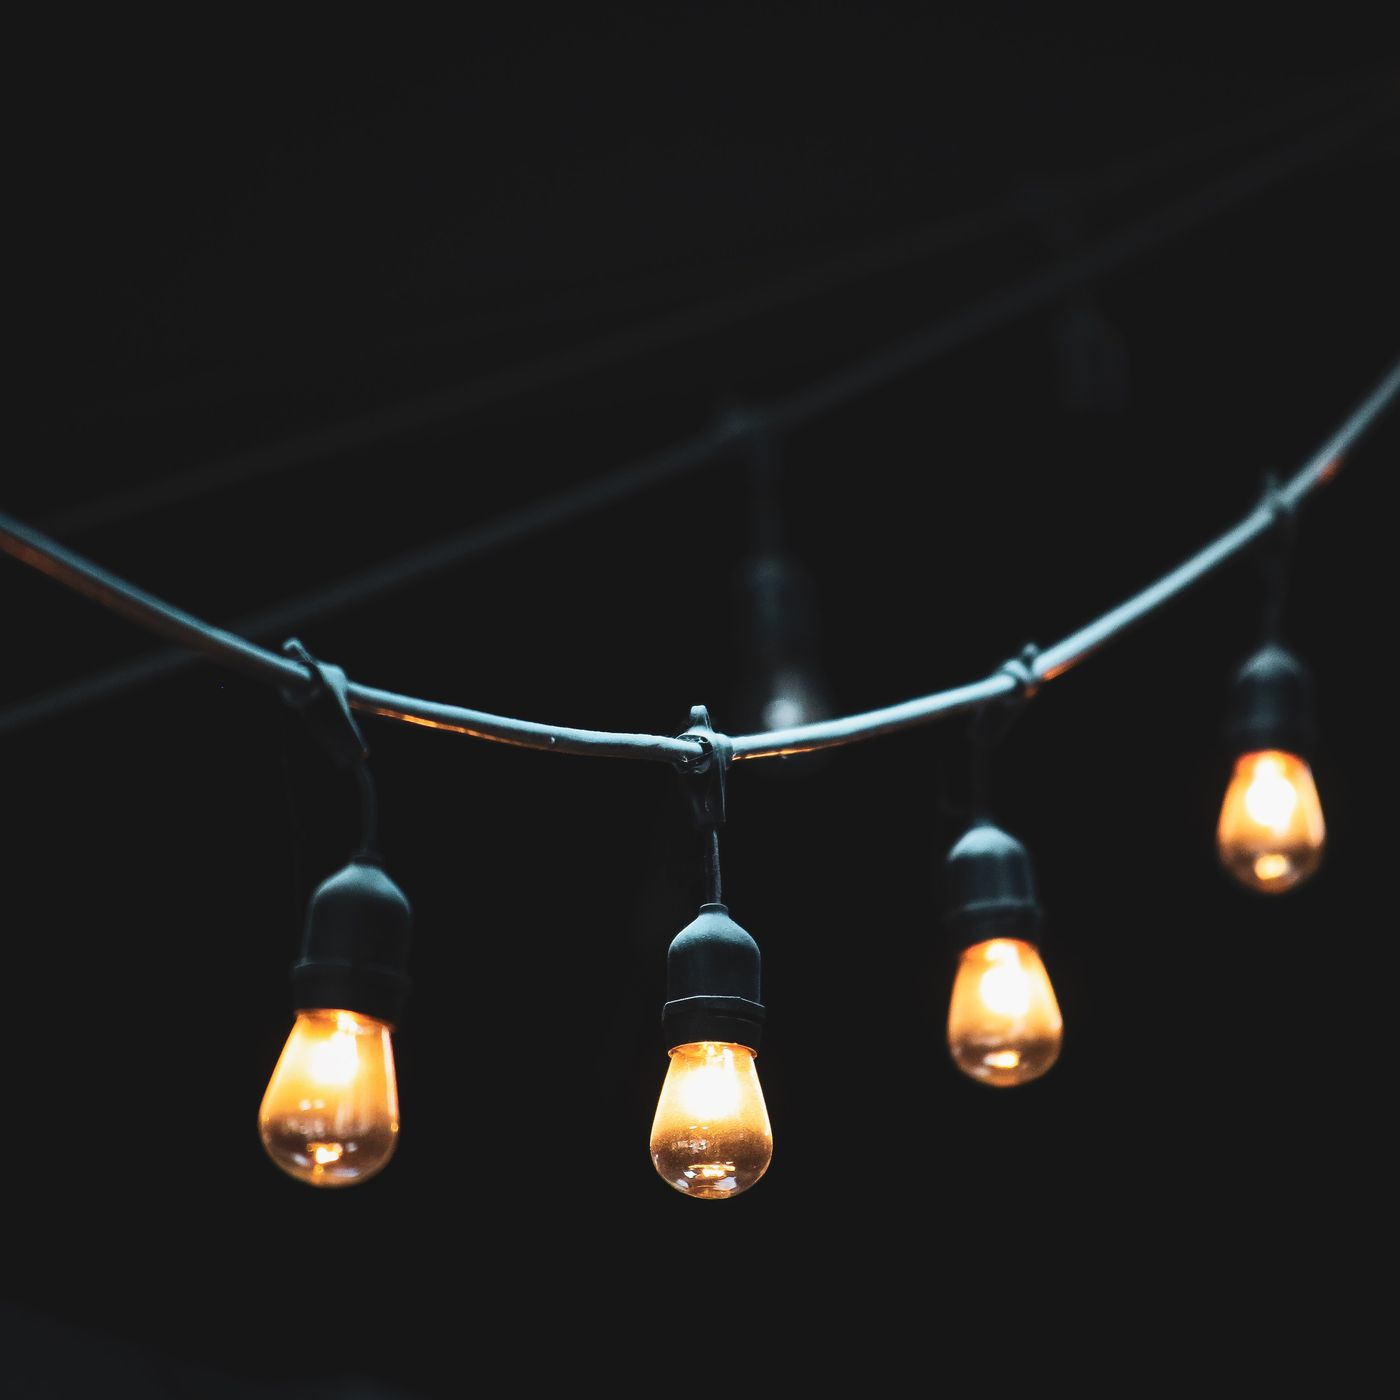 10 Diy String Light Ideas This Old House